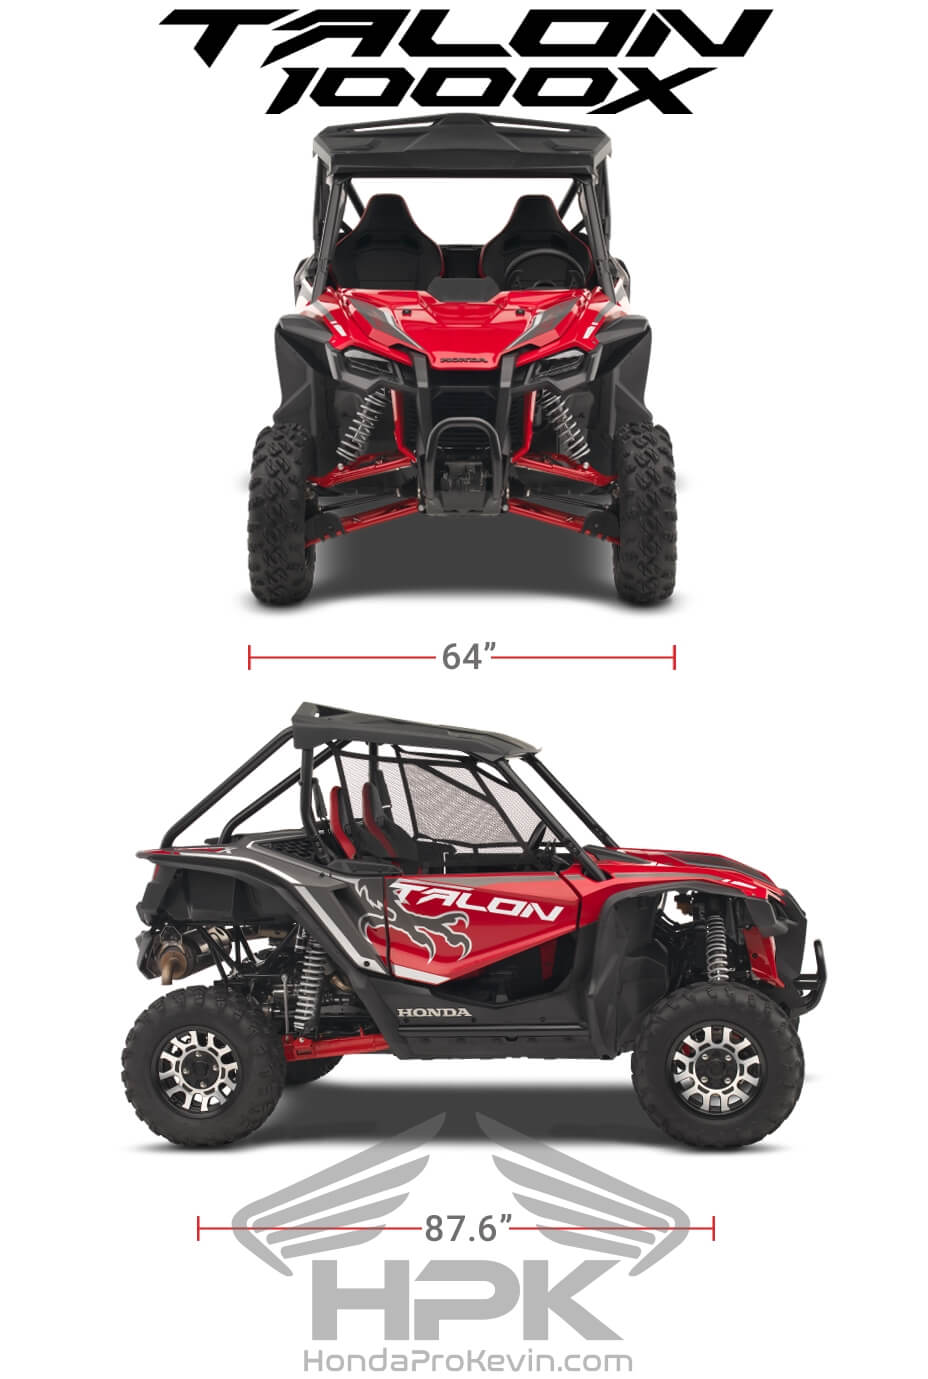 Honda TALON 1000X Dimensions: Width, Length, Wheelbase Specs | TALON 1000 X Sport SxS / UTV / Side by Side ATV